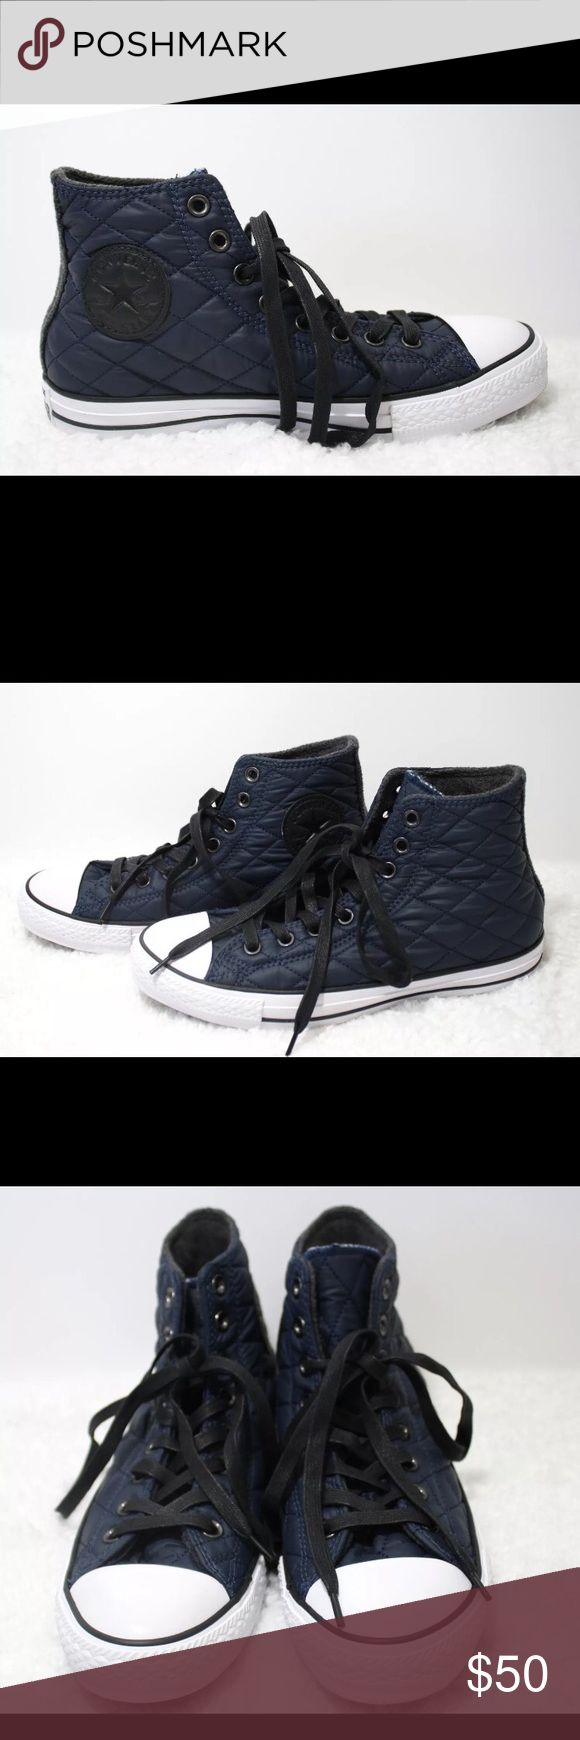 Converse Chuck Taylor All Star Quilted Navy Blue 9 Women's size 9